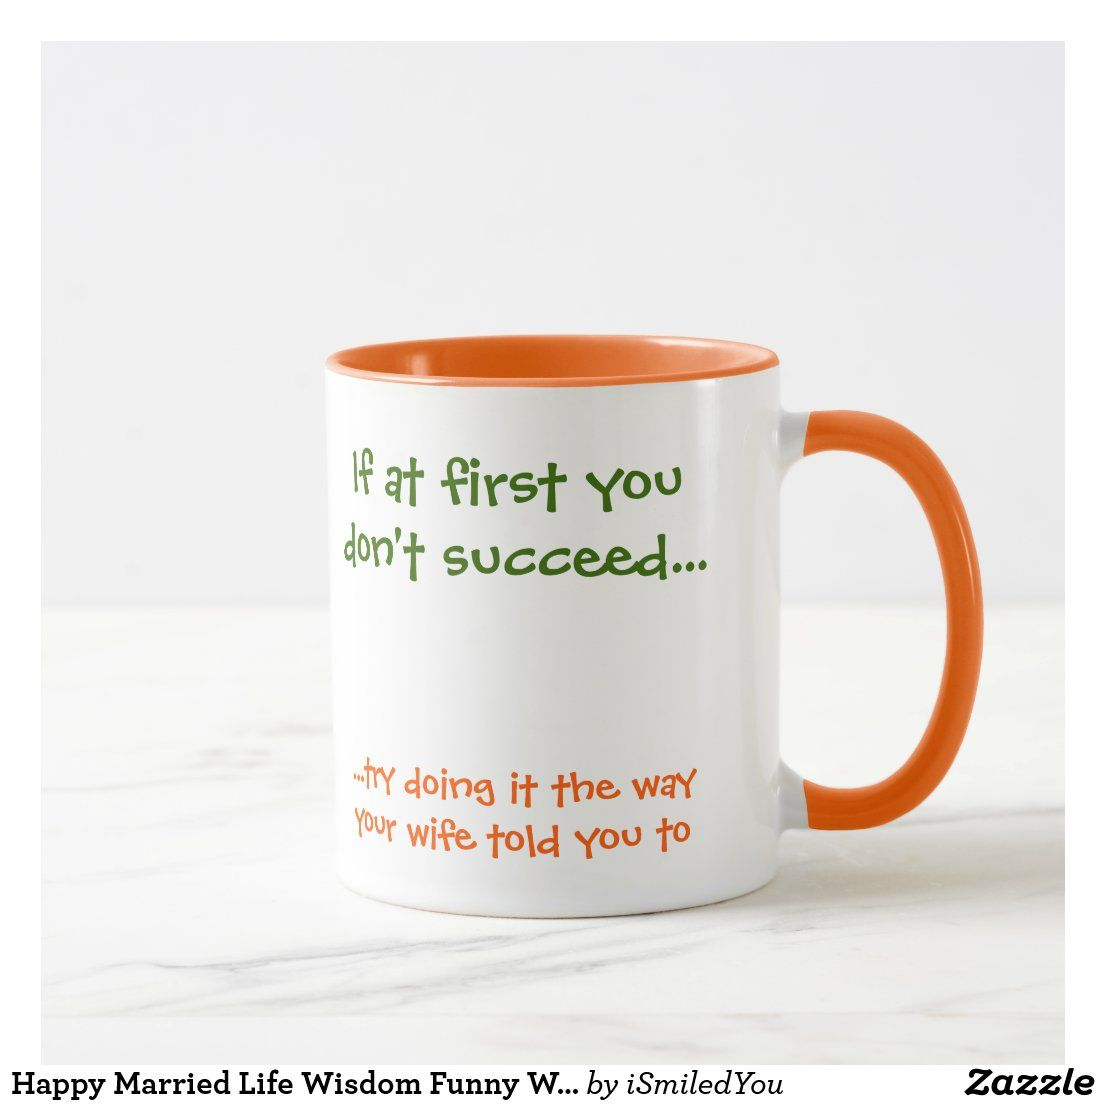 Happy Married Life Wisdom Funny Wife Quote Coffee Mug | Zazzle.com in 2020 | Funny wife quotes ...